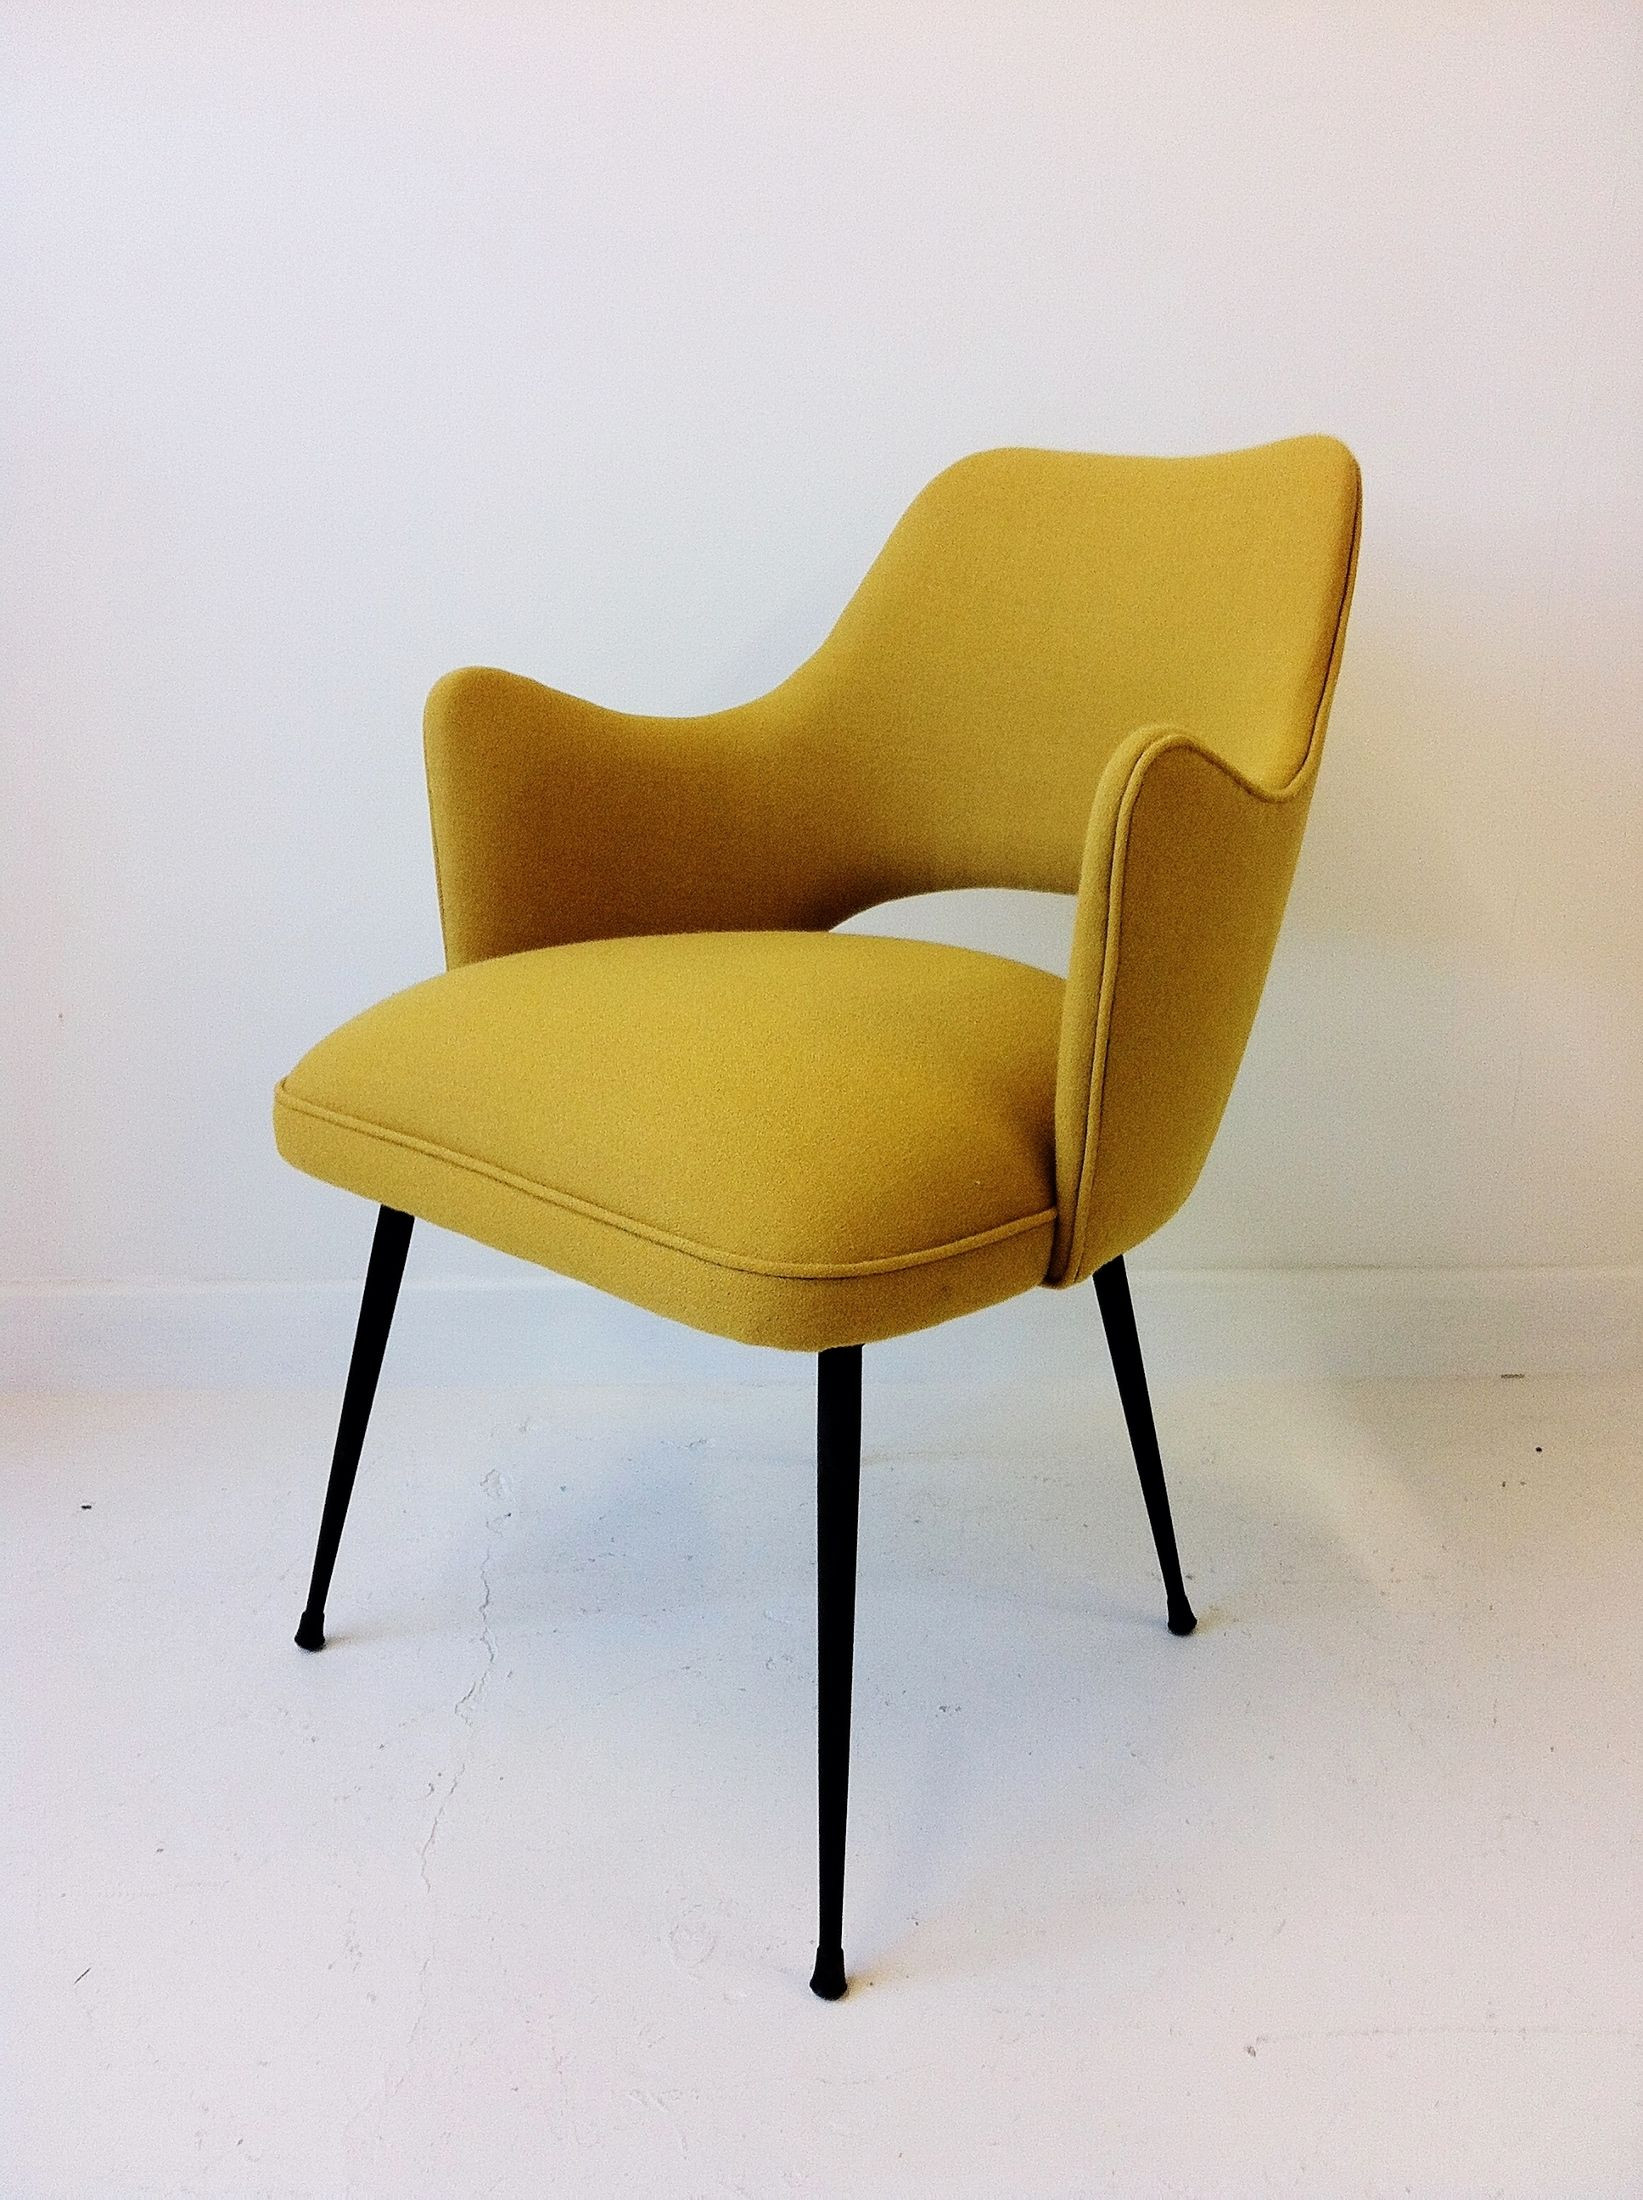 pair of 1950s italian easy chairs modern chairsmidcentury - Mid Century Modern Furniture Of The 1950s